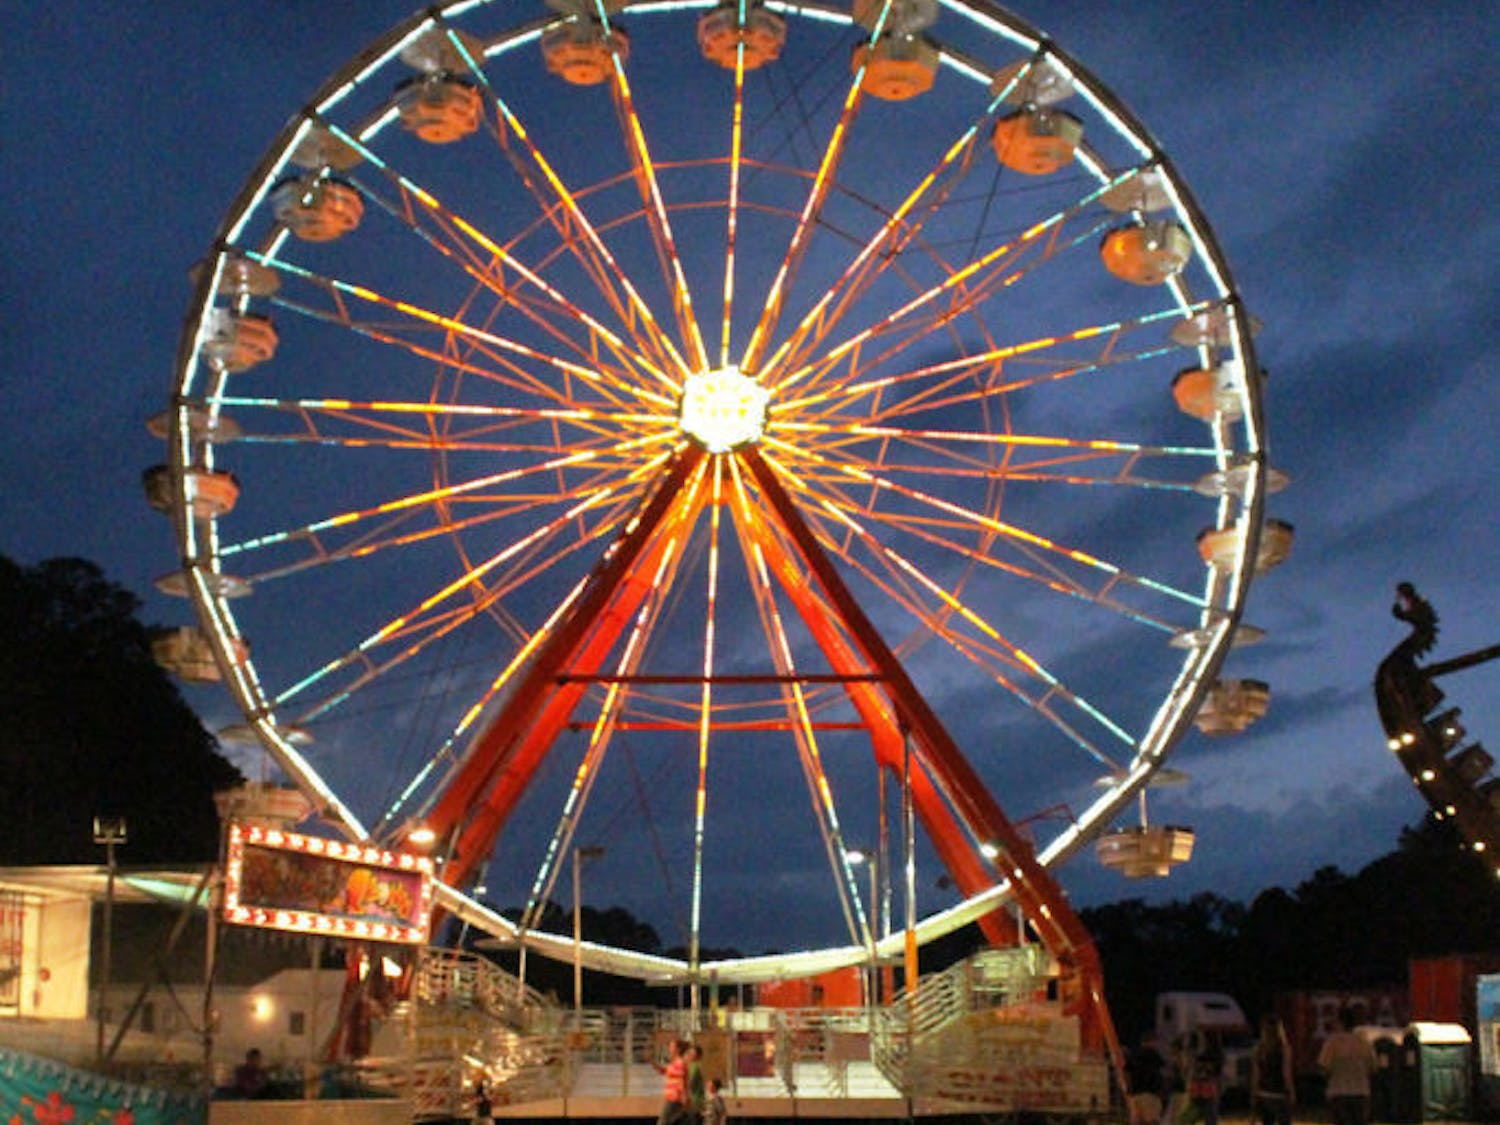 Patrons walk in front of a Ferris wheel Monday evening at the Alachua County Fair, held at the Alachua County Fairgrounds, 3100 NE 39th Ave. The fair runs through Saturday.